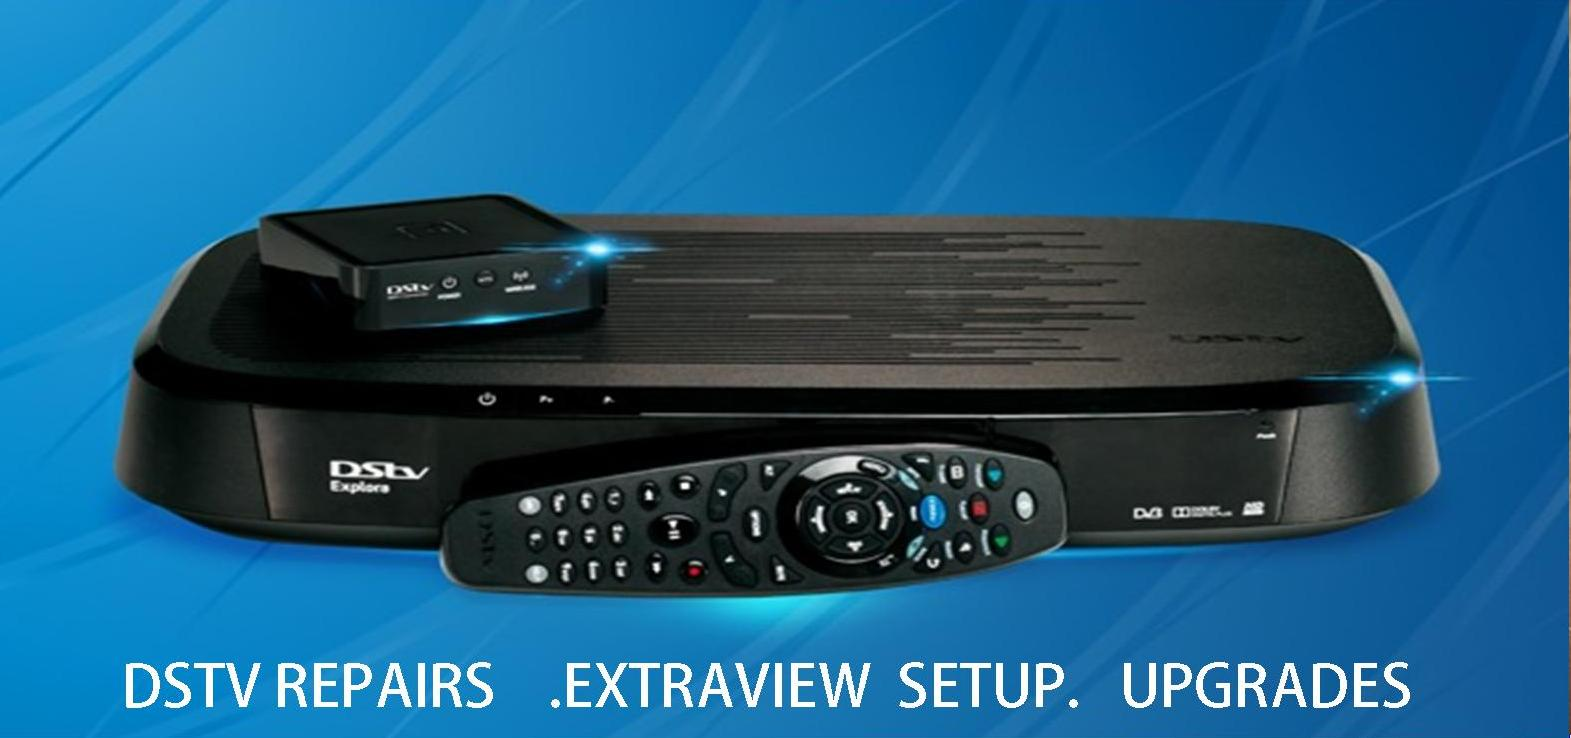 Get the new DSTV Explora today